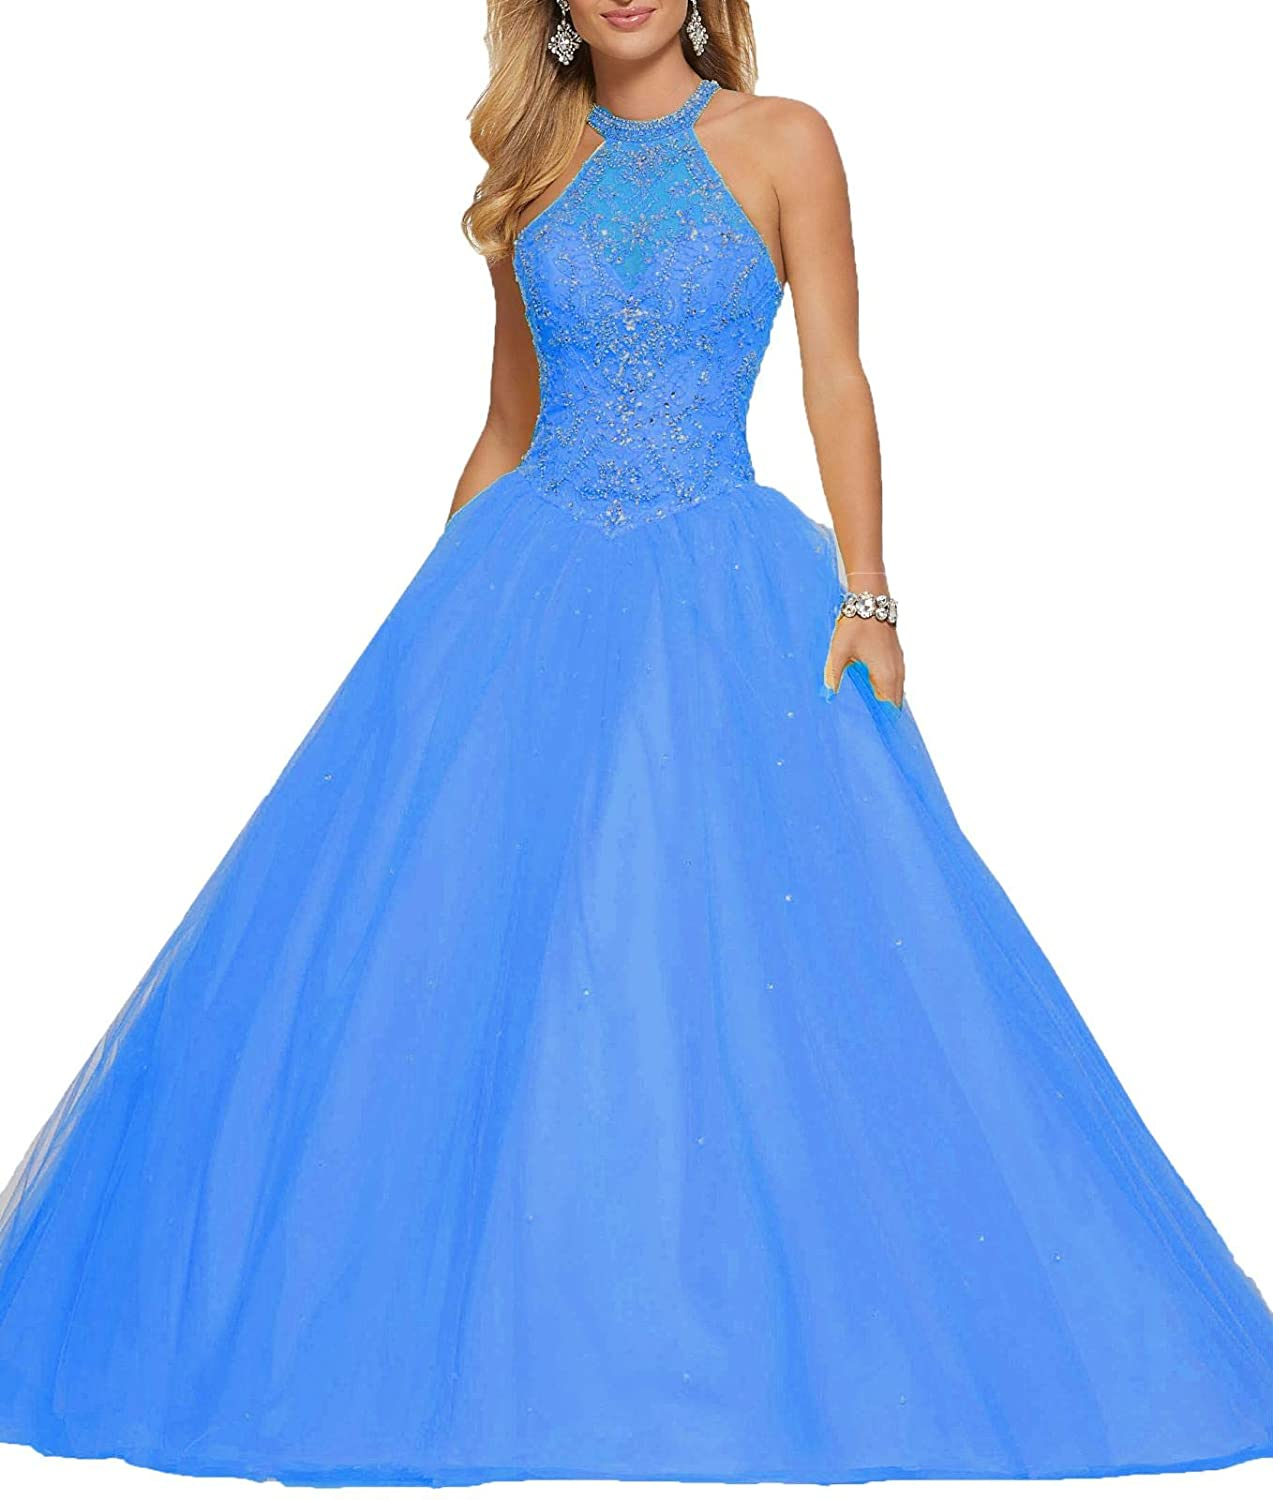 bluee 1 Wanshaqin Women's High Neck Lace Prom Ball Gowns with Beading Appliques Quinceanera Dresses Tulle